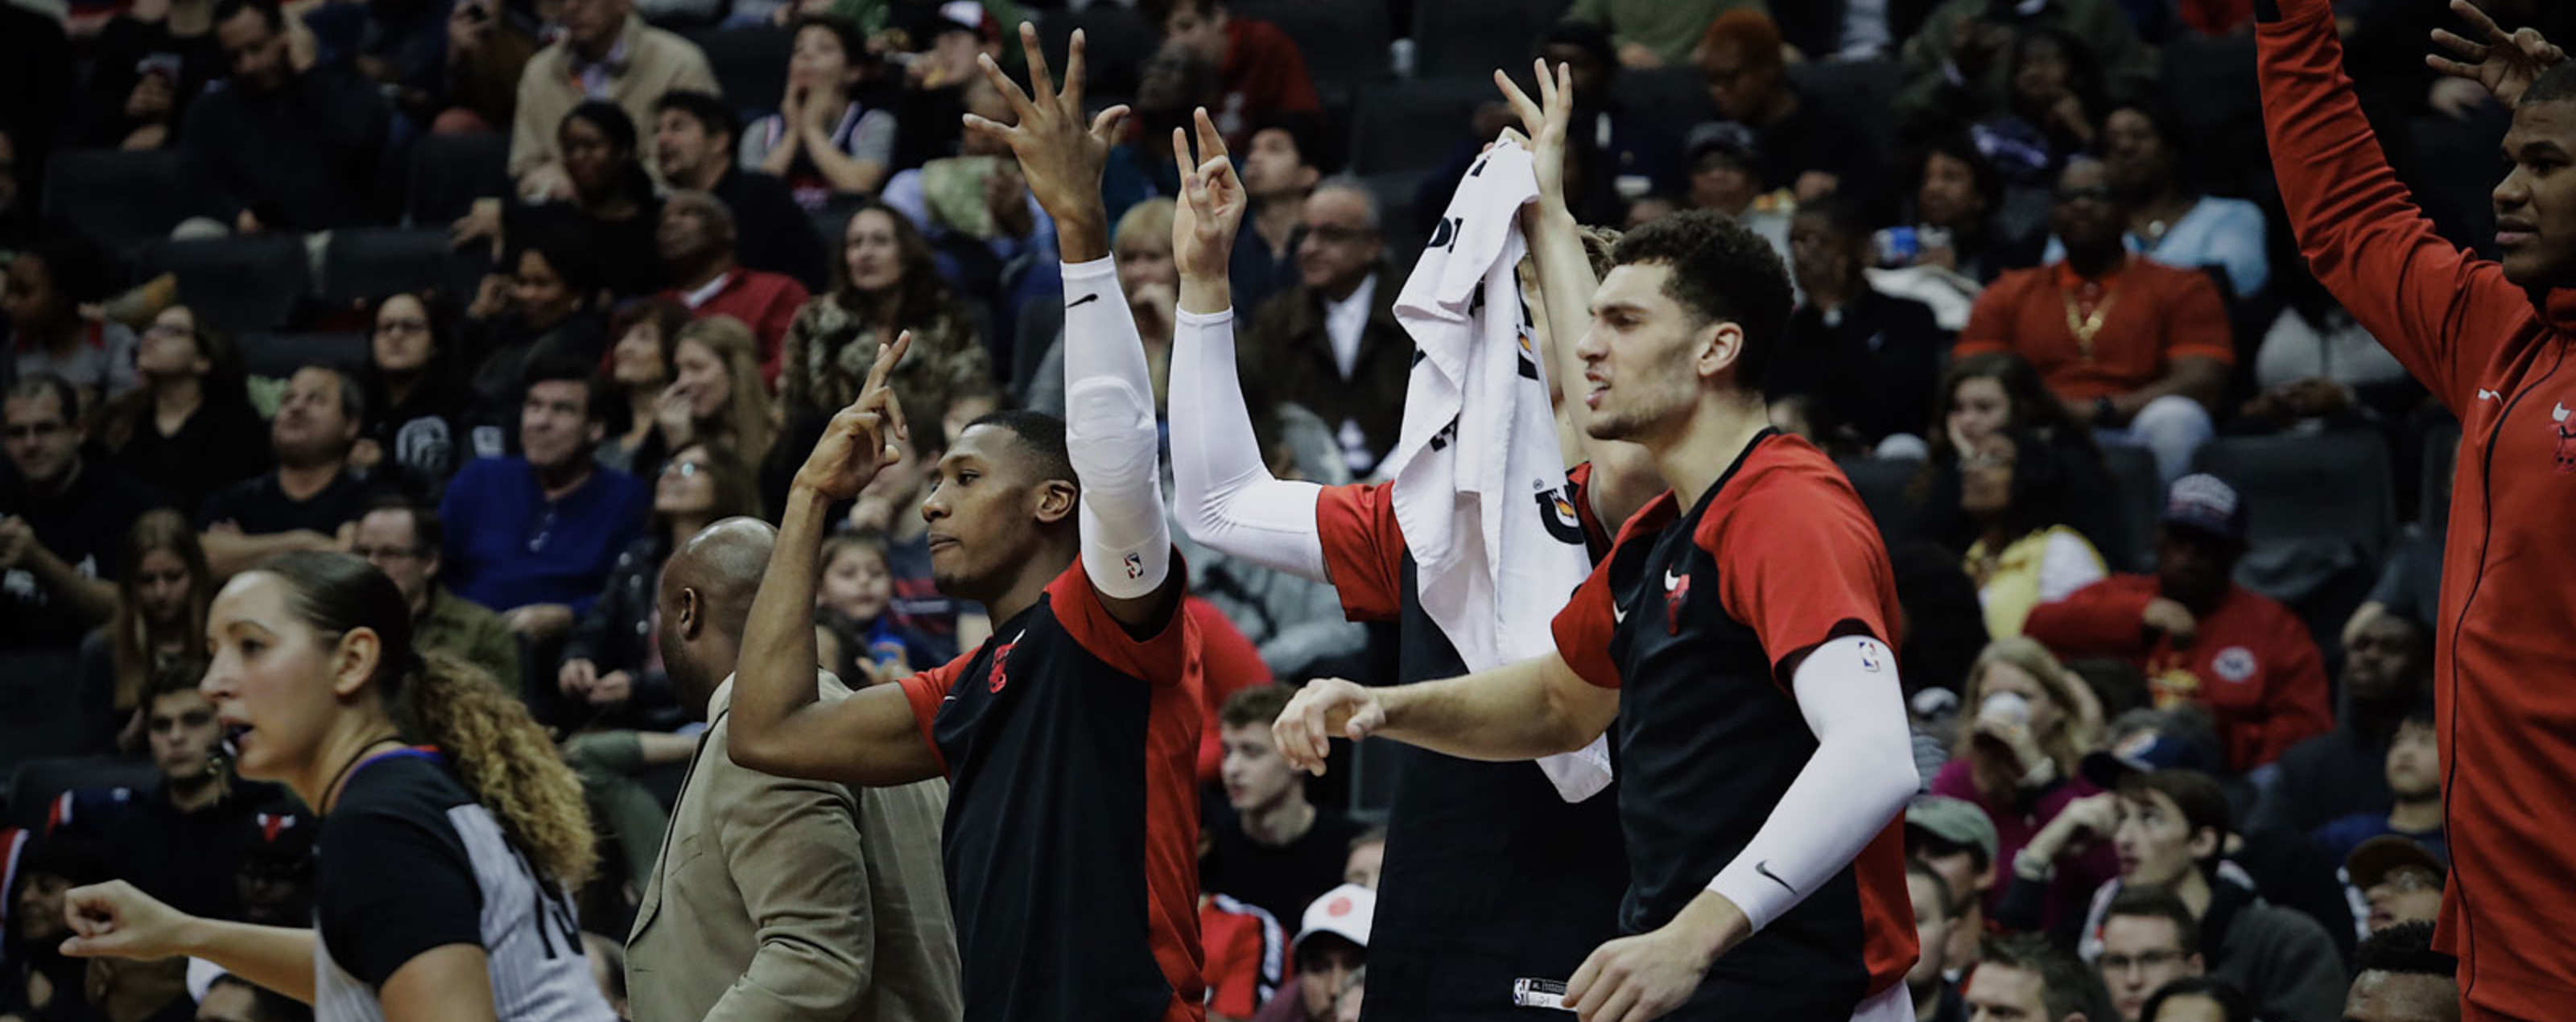 Zach LaVine, Kris Dunn and Lauri Markkanen react on the bench against the Wizards